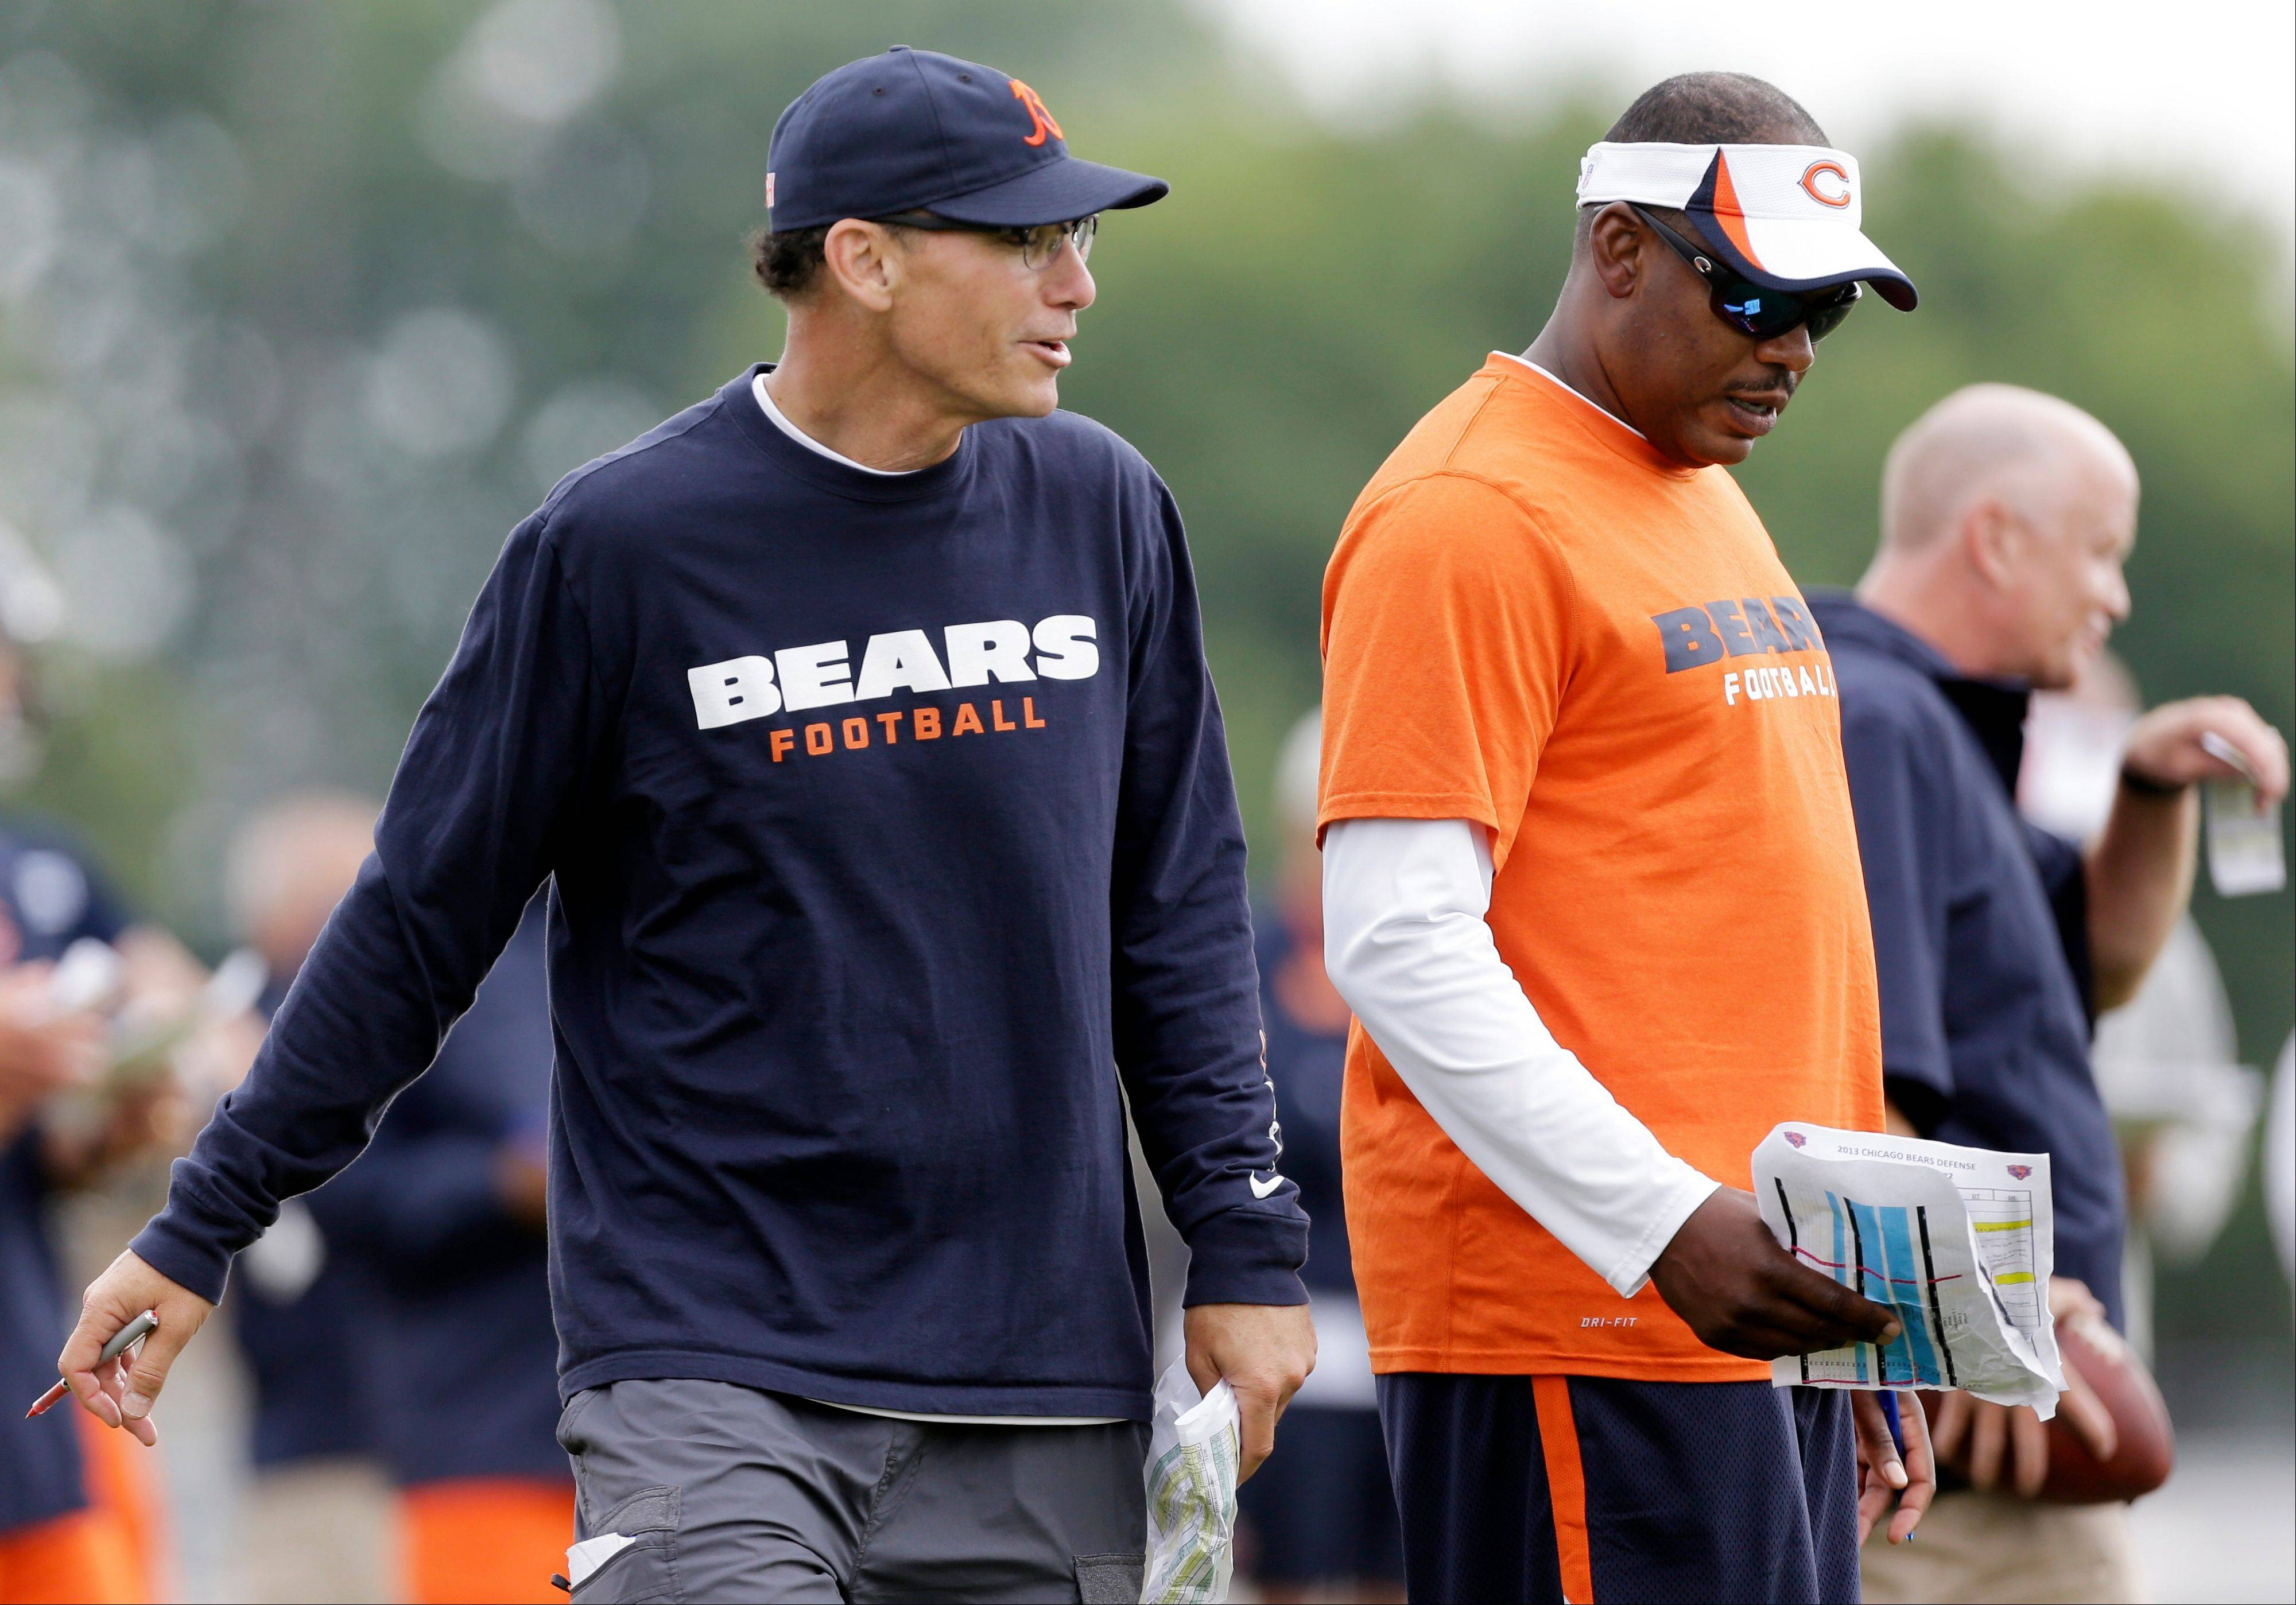 Bears head coach Marc Trestman, left, chats with defensive coordinator Mel Tucker during training camp.